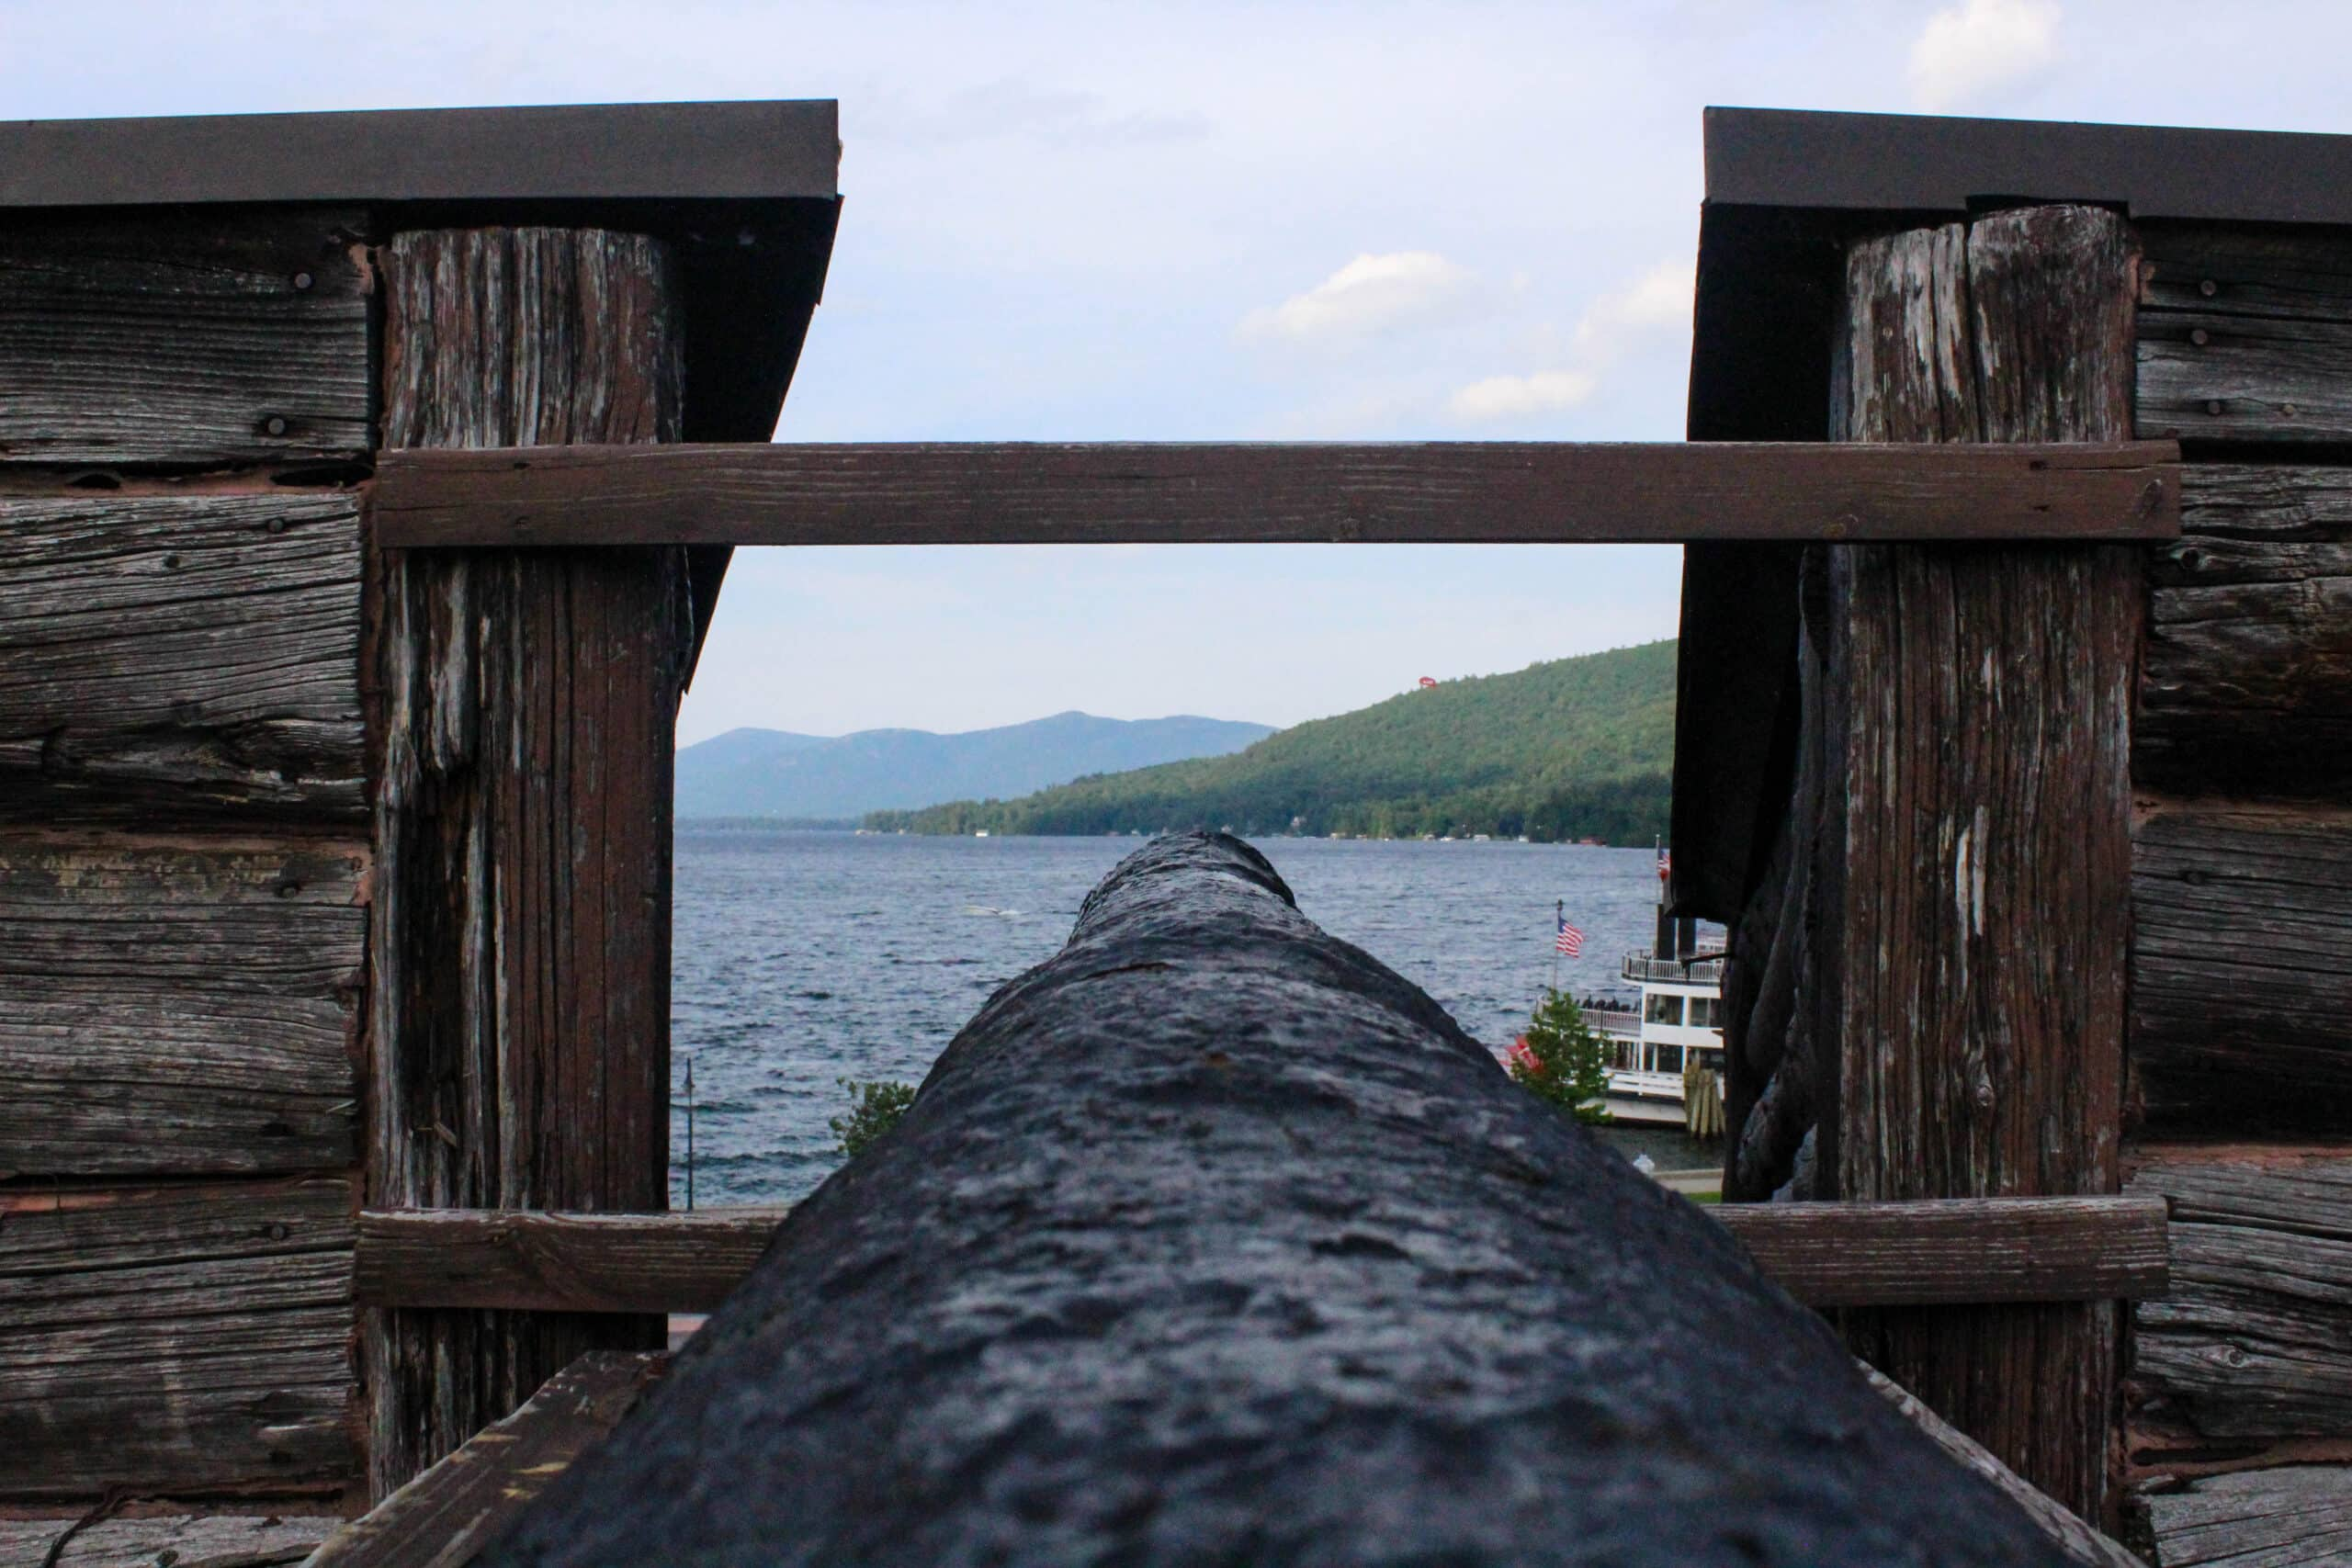 Cannon overlooking Lake George